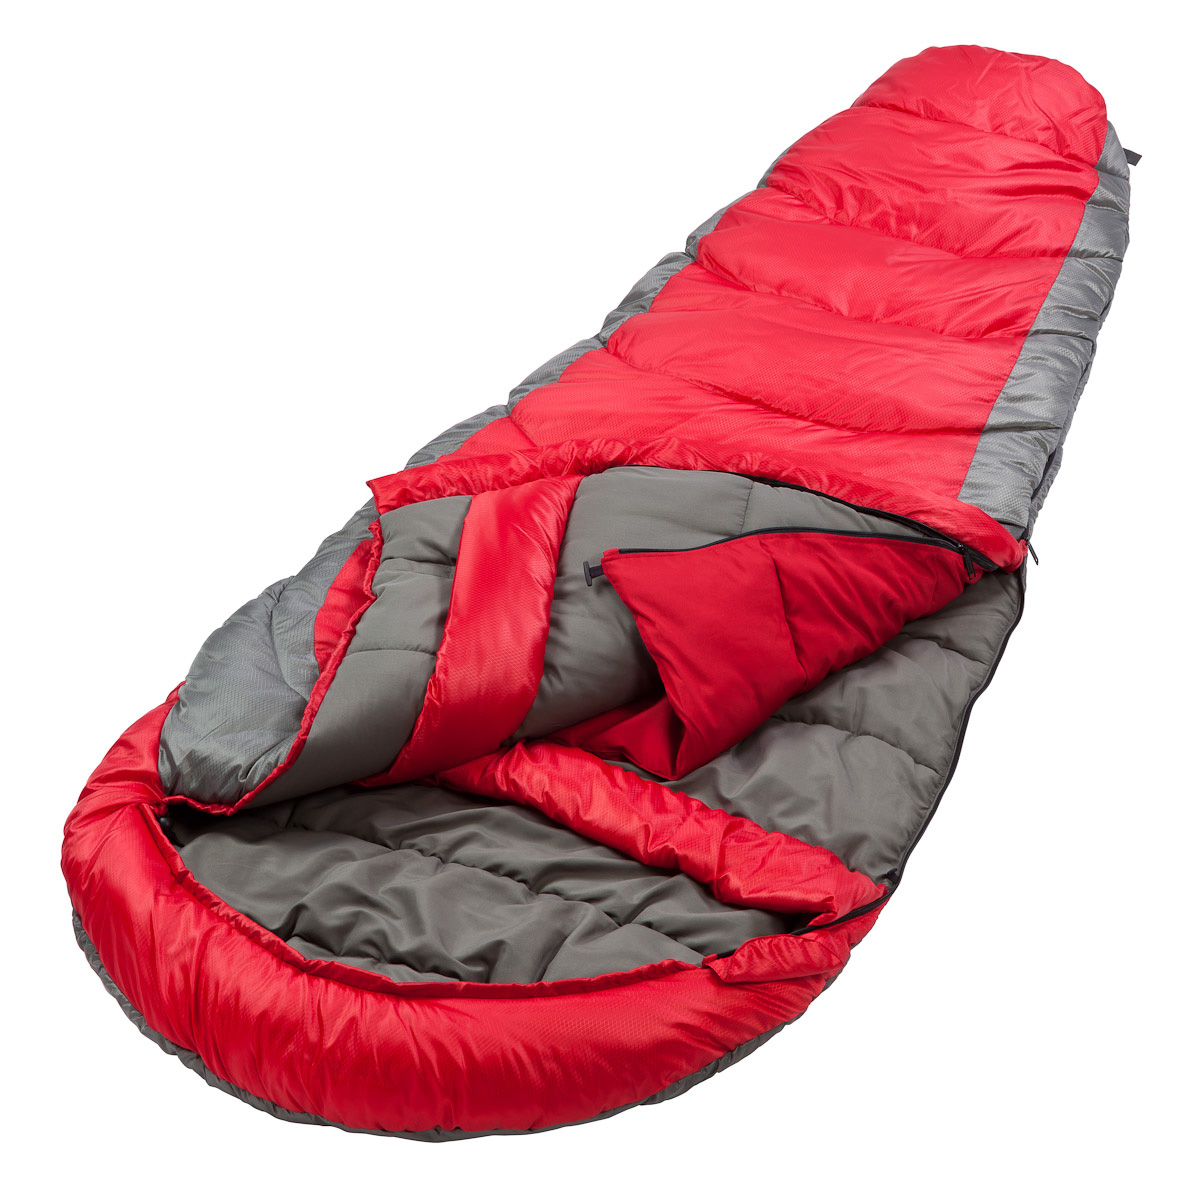 A hero shot of a Coleman mummy sleeping bag photographed in studio for product packaging, print collateral, and advertising